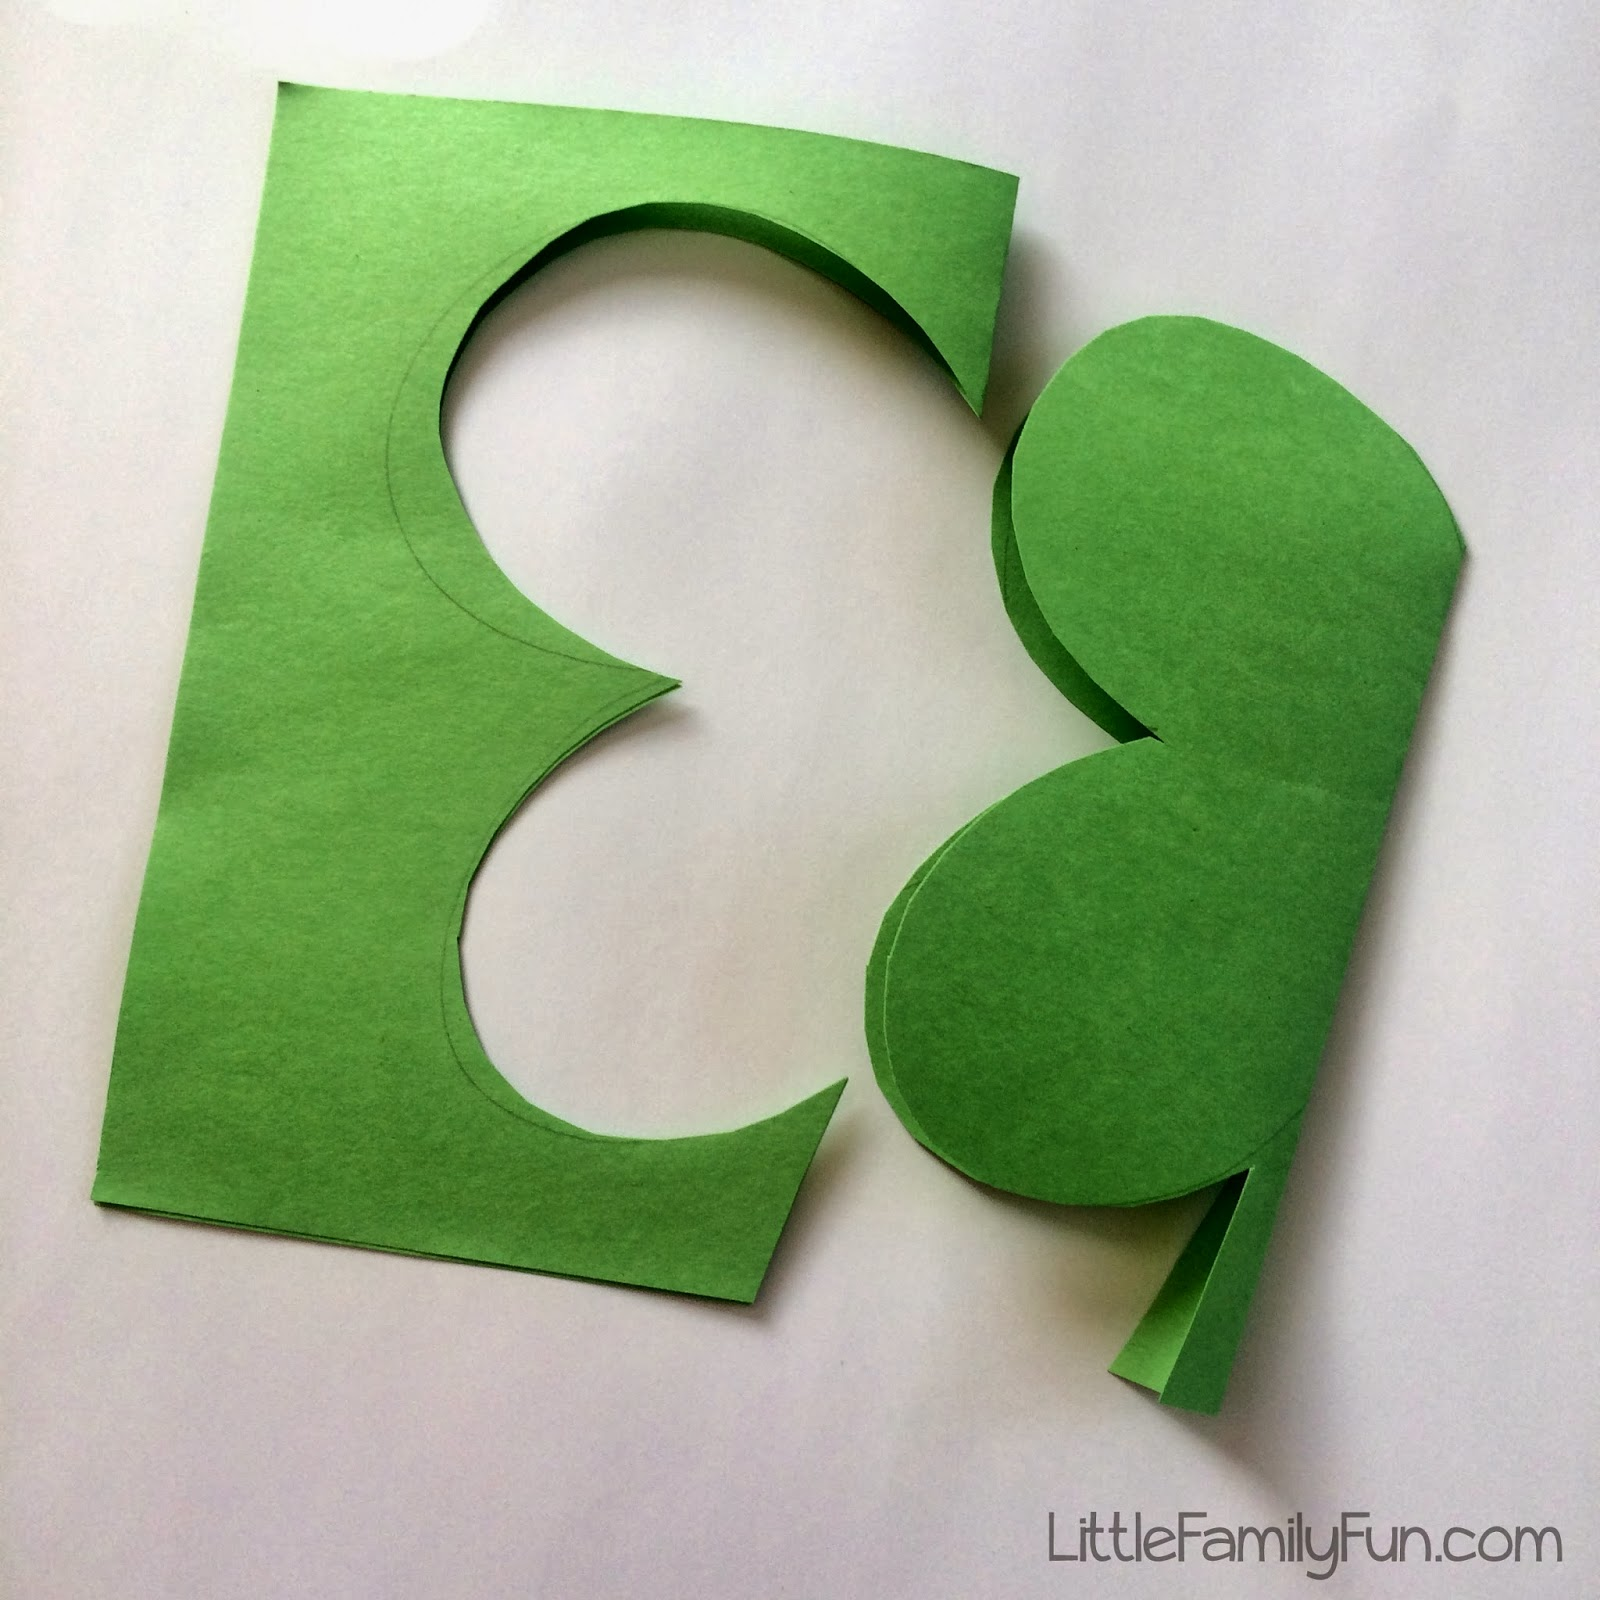 little family fun paper scrap clover craft